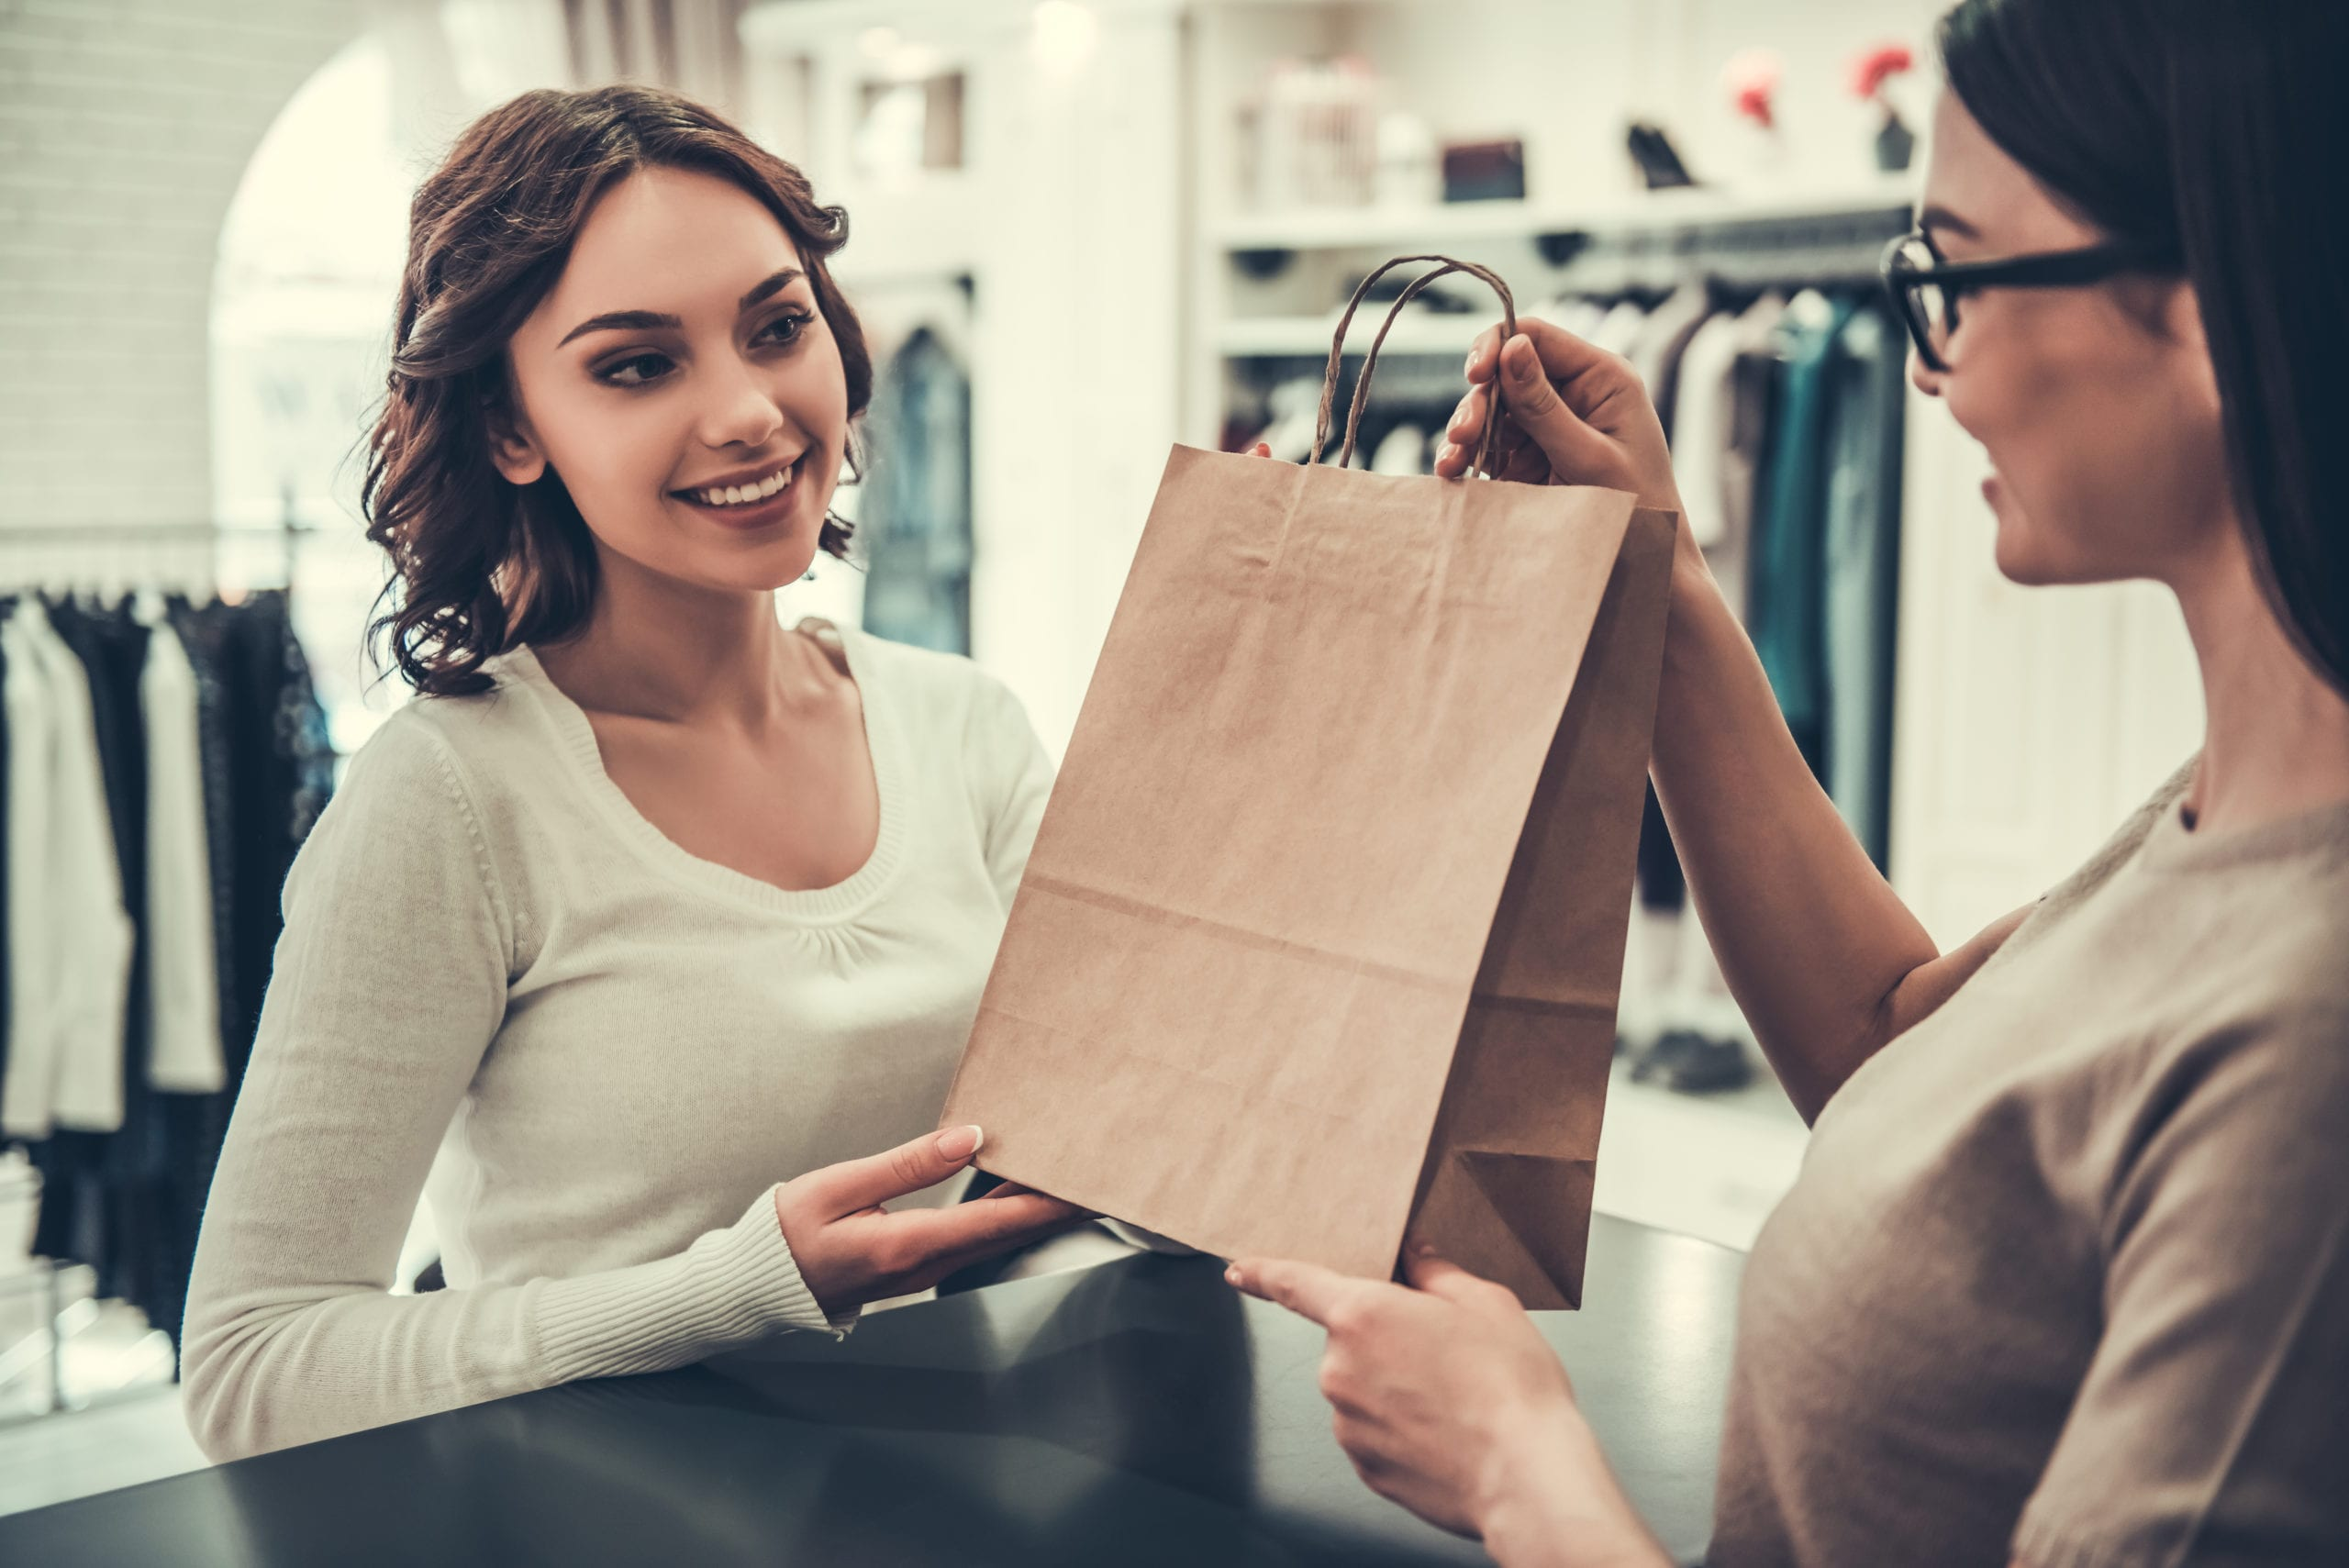 woman taking shopping bags from shop assistant